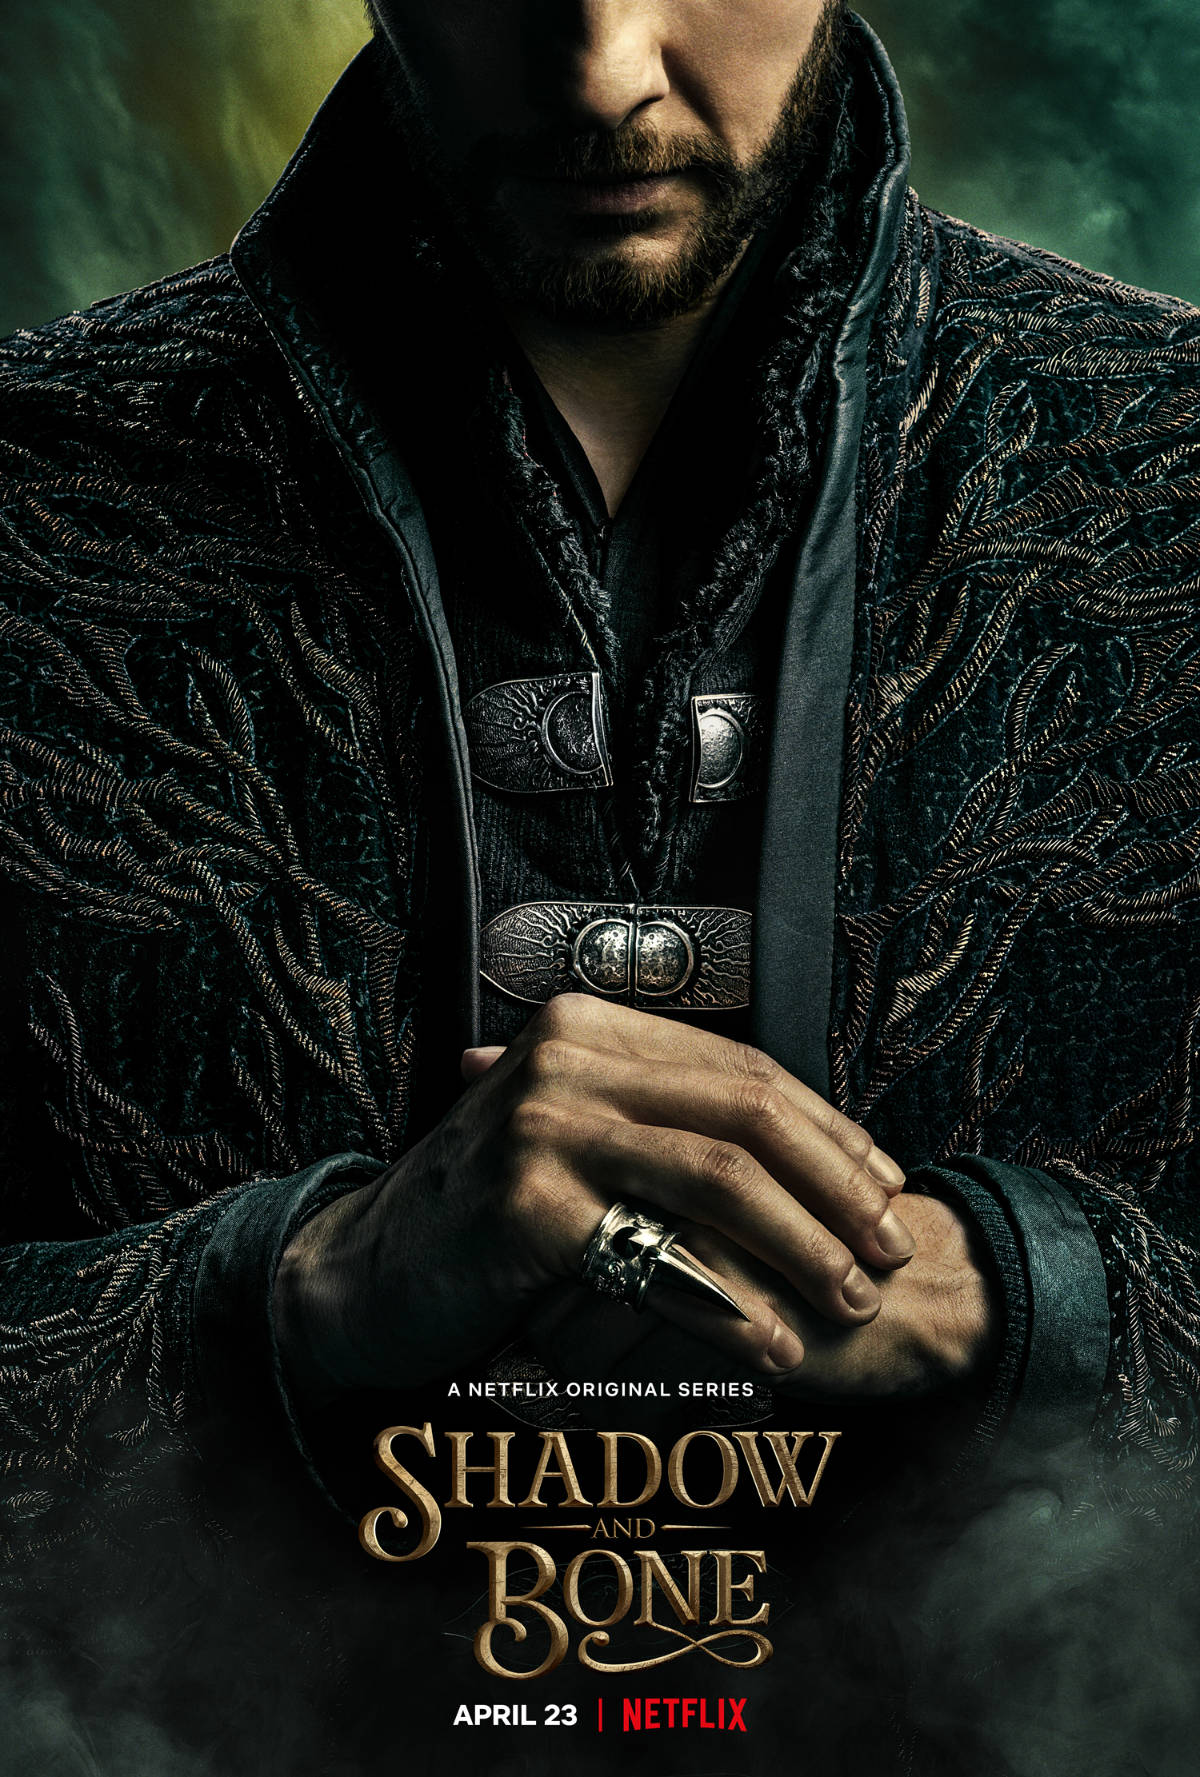 New Netflix's Shadow and Bone Posters and First Look Images